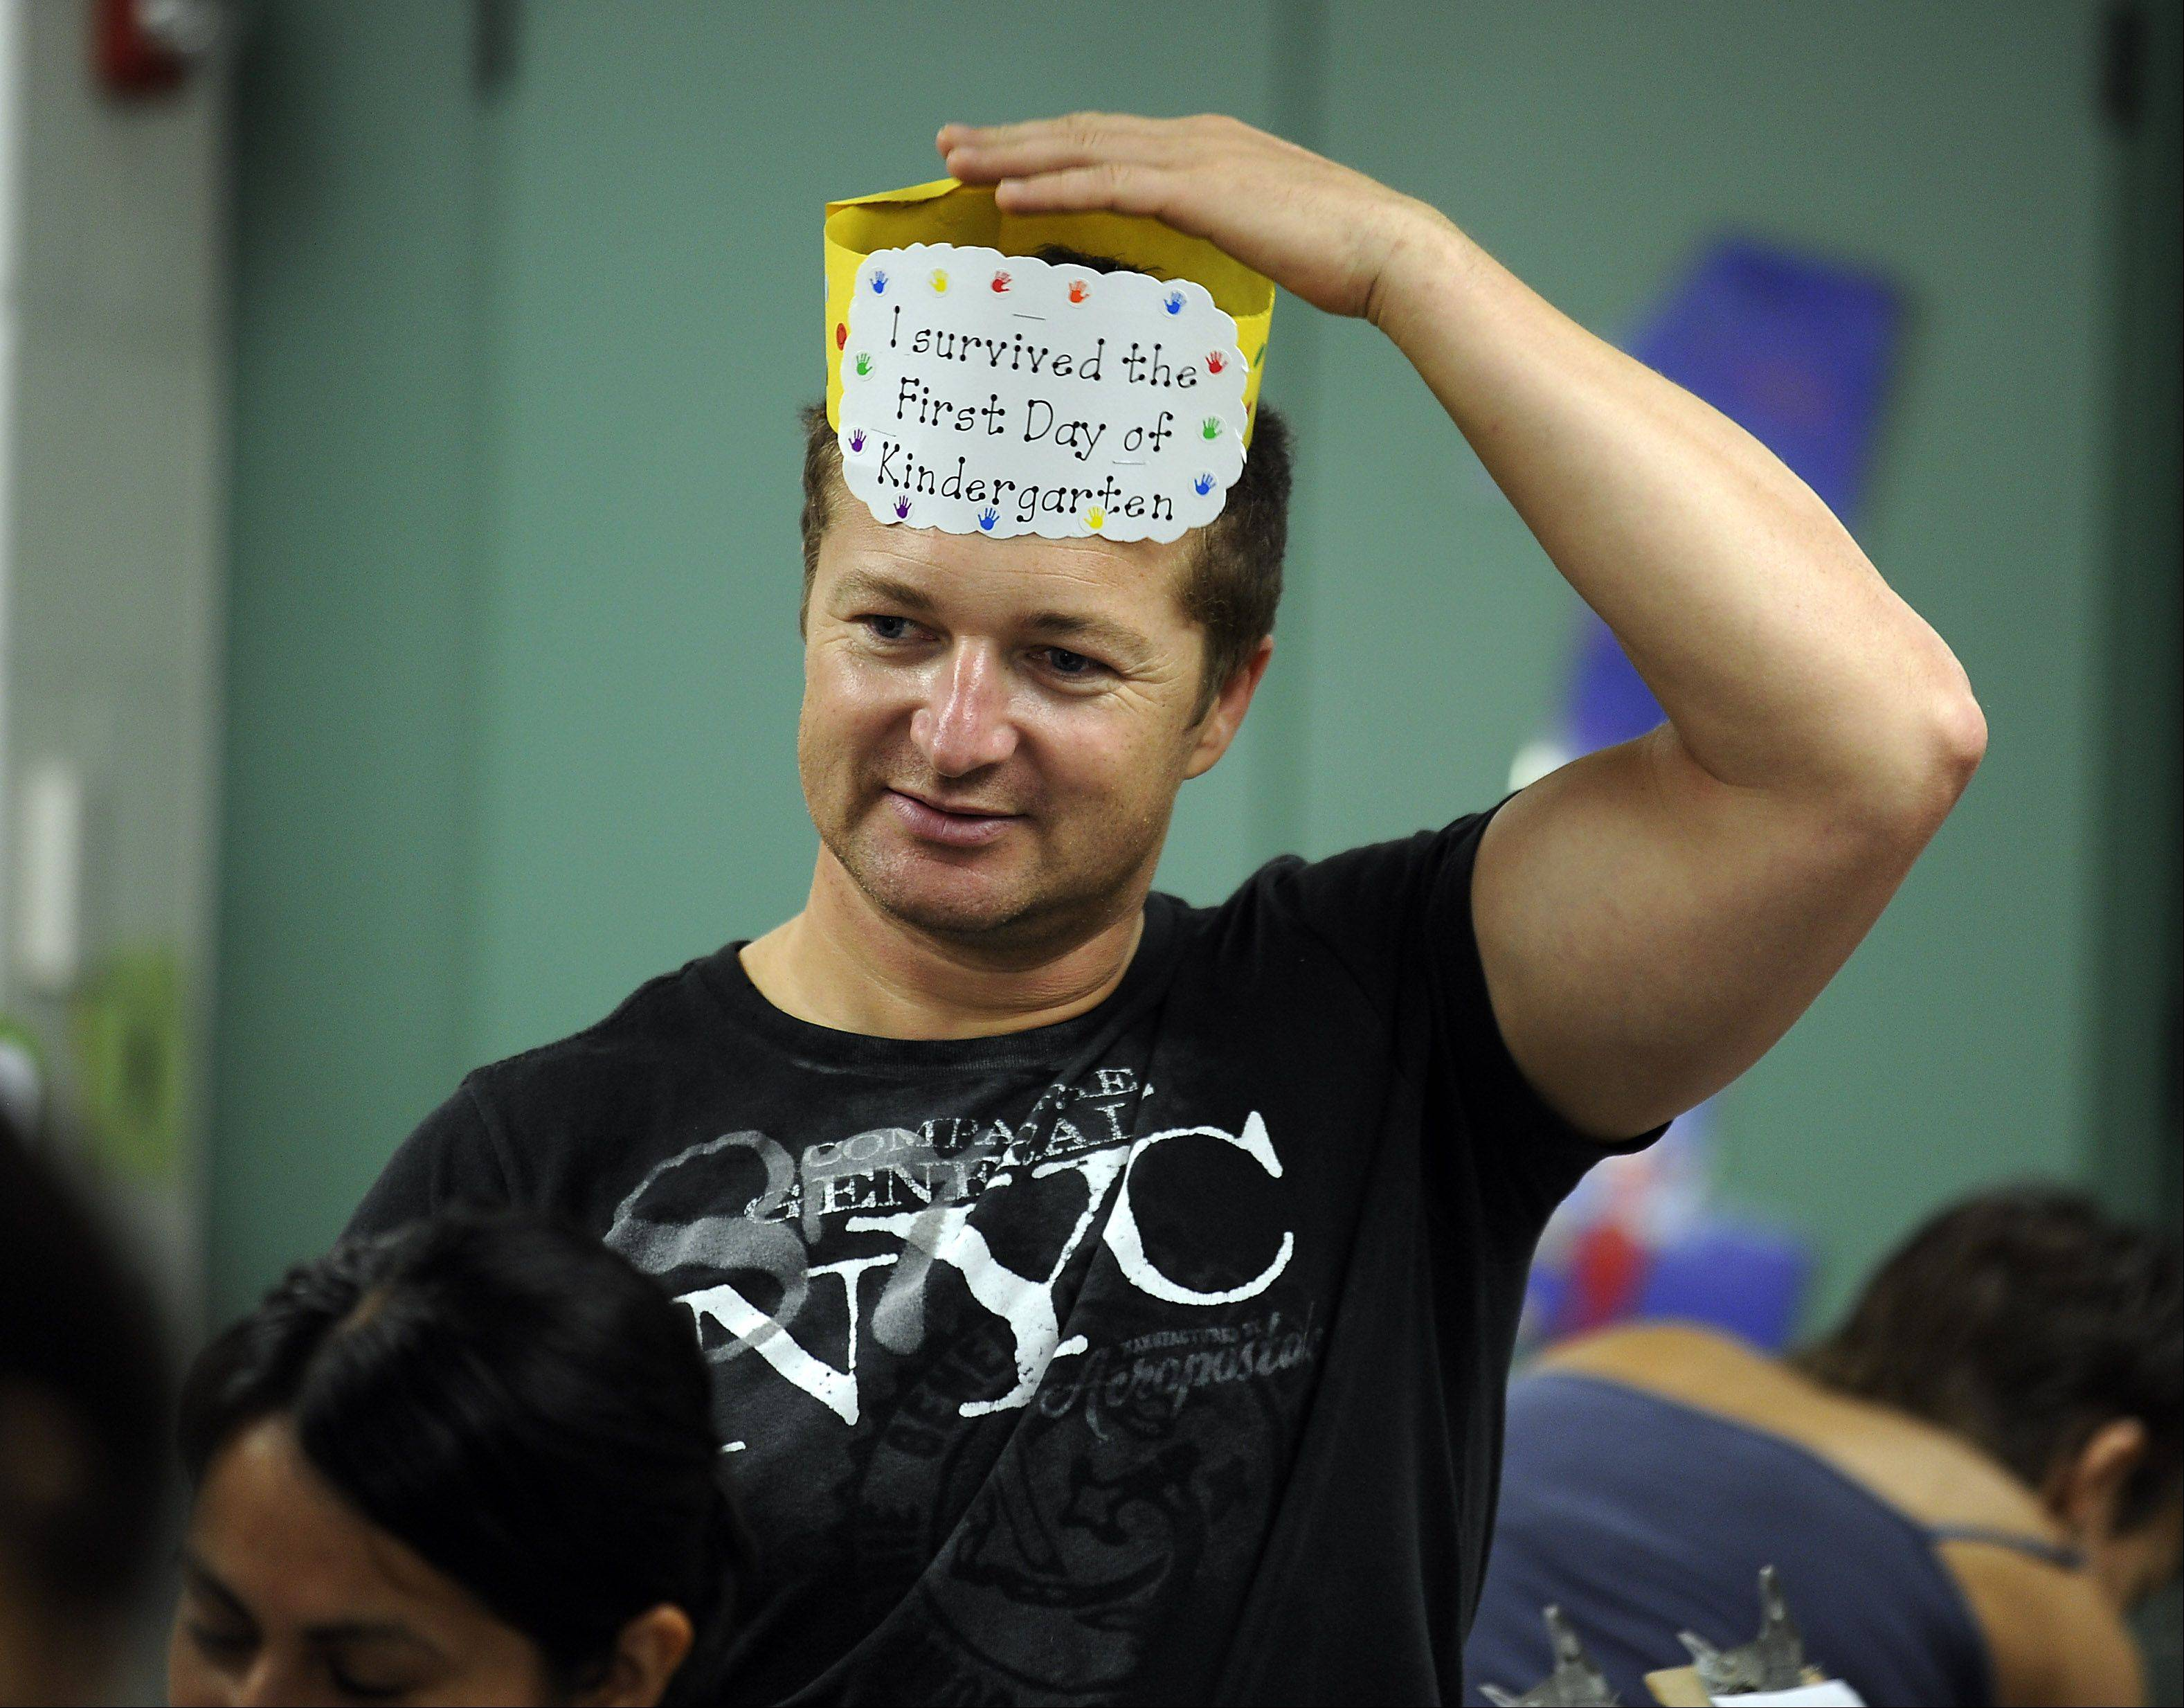 Boguslain Szczepanik gets into the spirt of things in his daughter Vanessa's classroom, stealing the hat she made as part of the open house at the Ridge Family Center for Learning in Elk Grove Village.